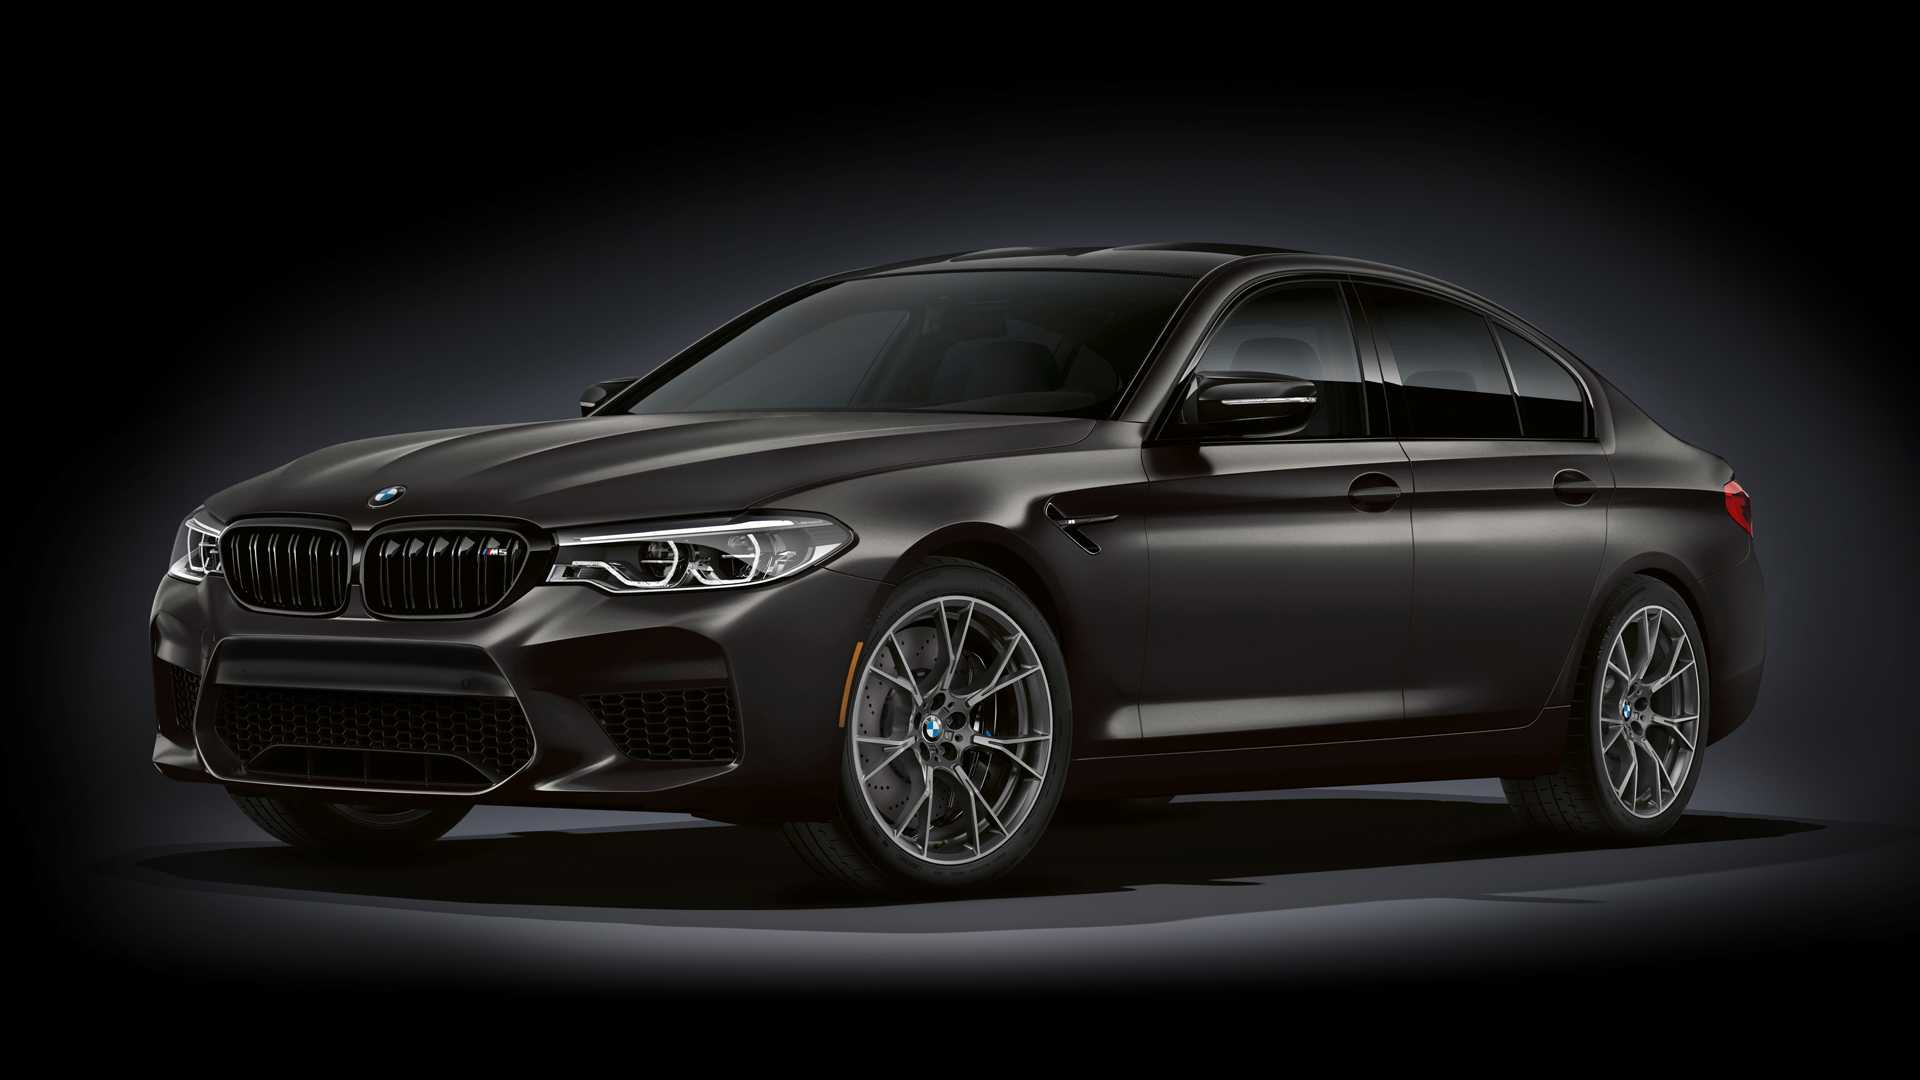 2020 BMW M5 Edition 35 Years Front Three-Quarter Wallpapers (6)